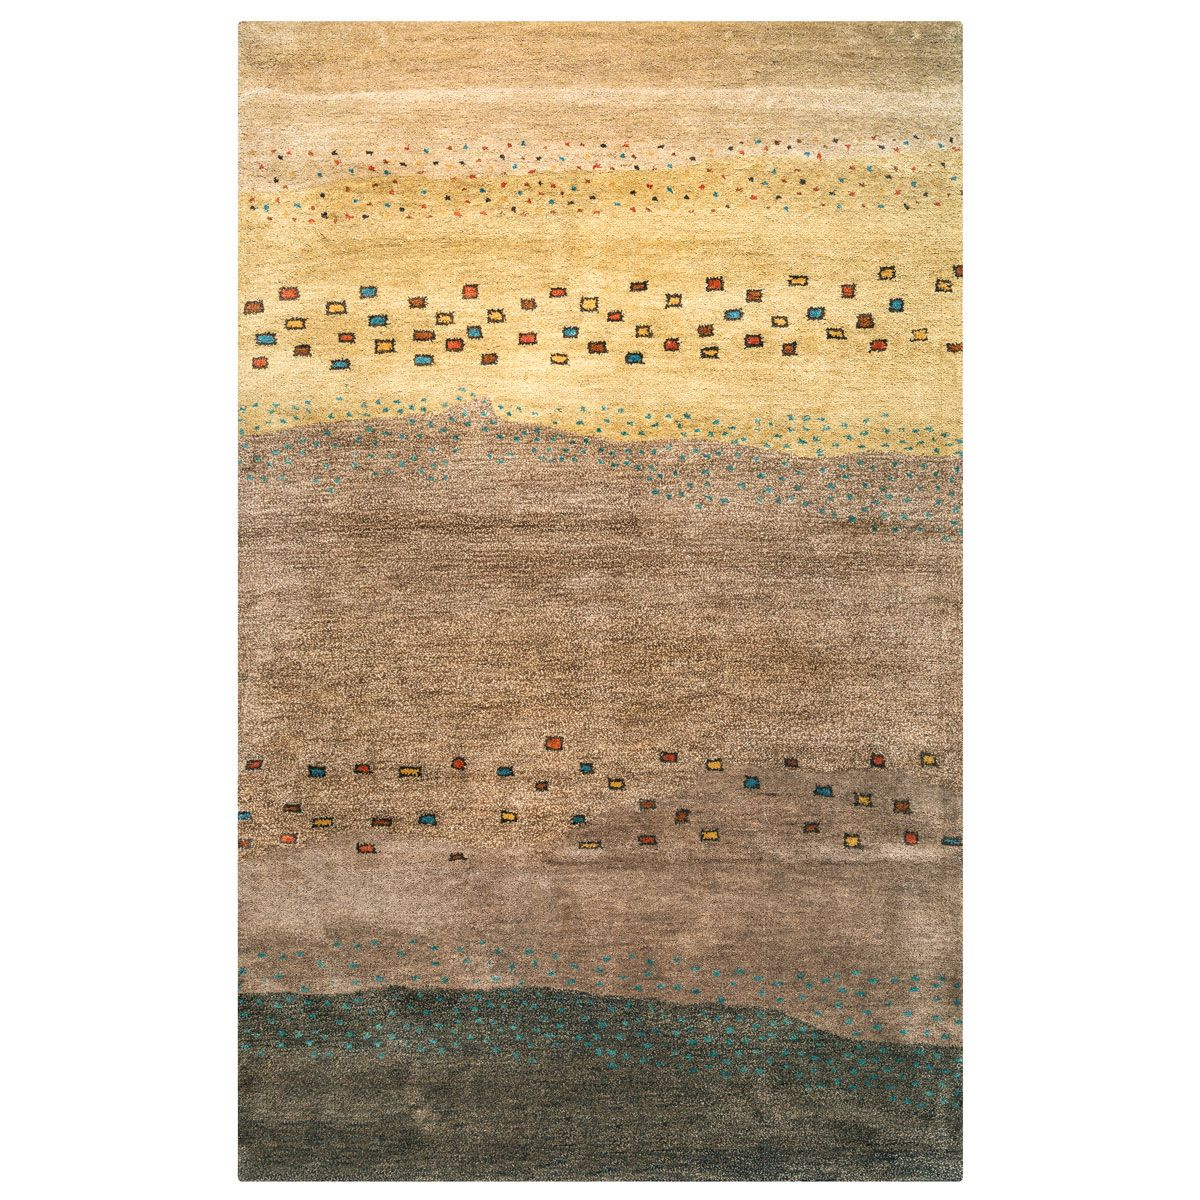 Spencer Sands Rug - 4 x 6